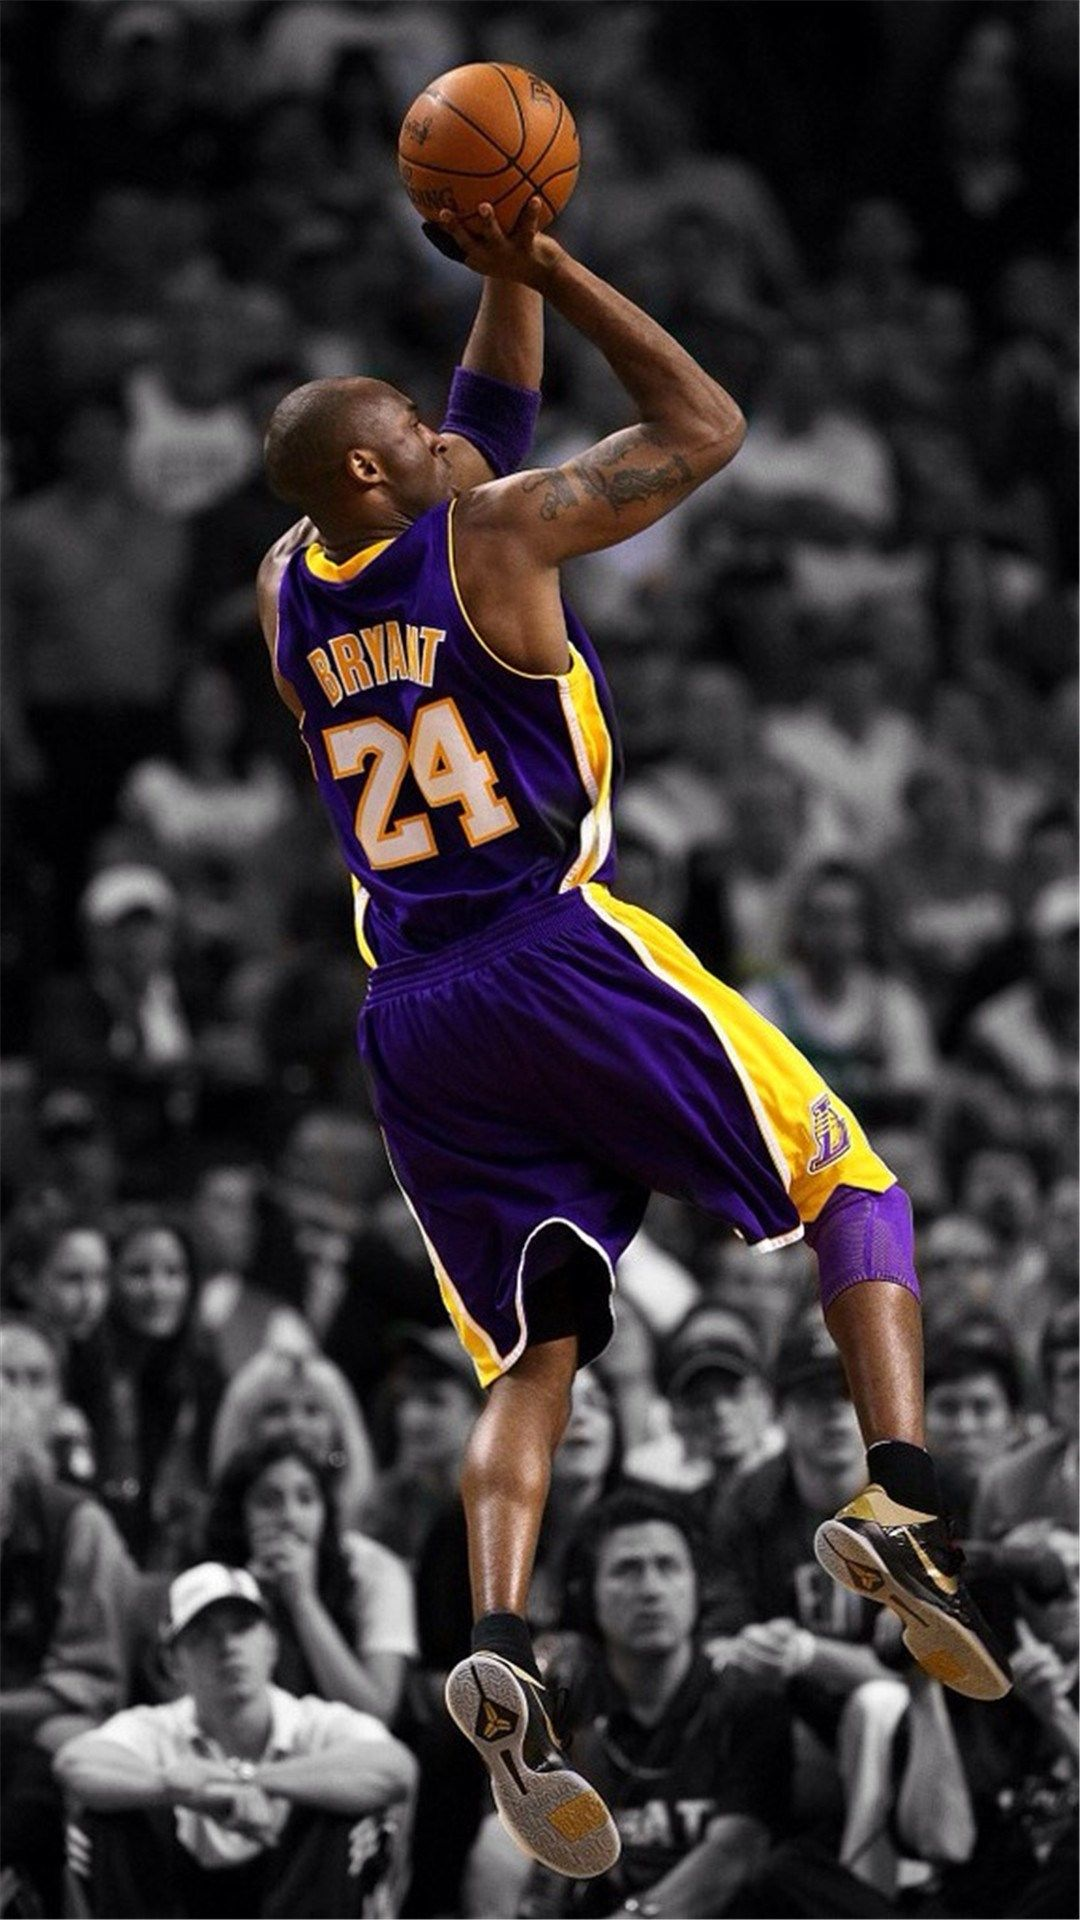 Nba Super Star Brant Kobe Show Iphone 6 Plus Wallpaper